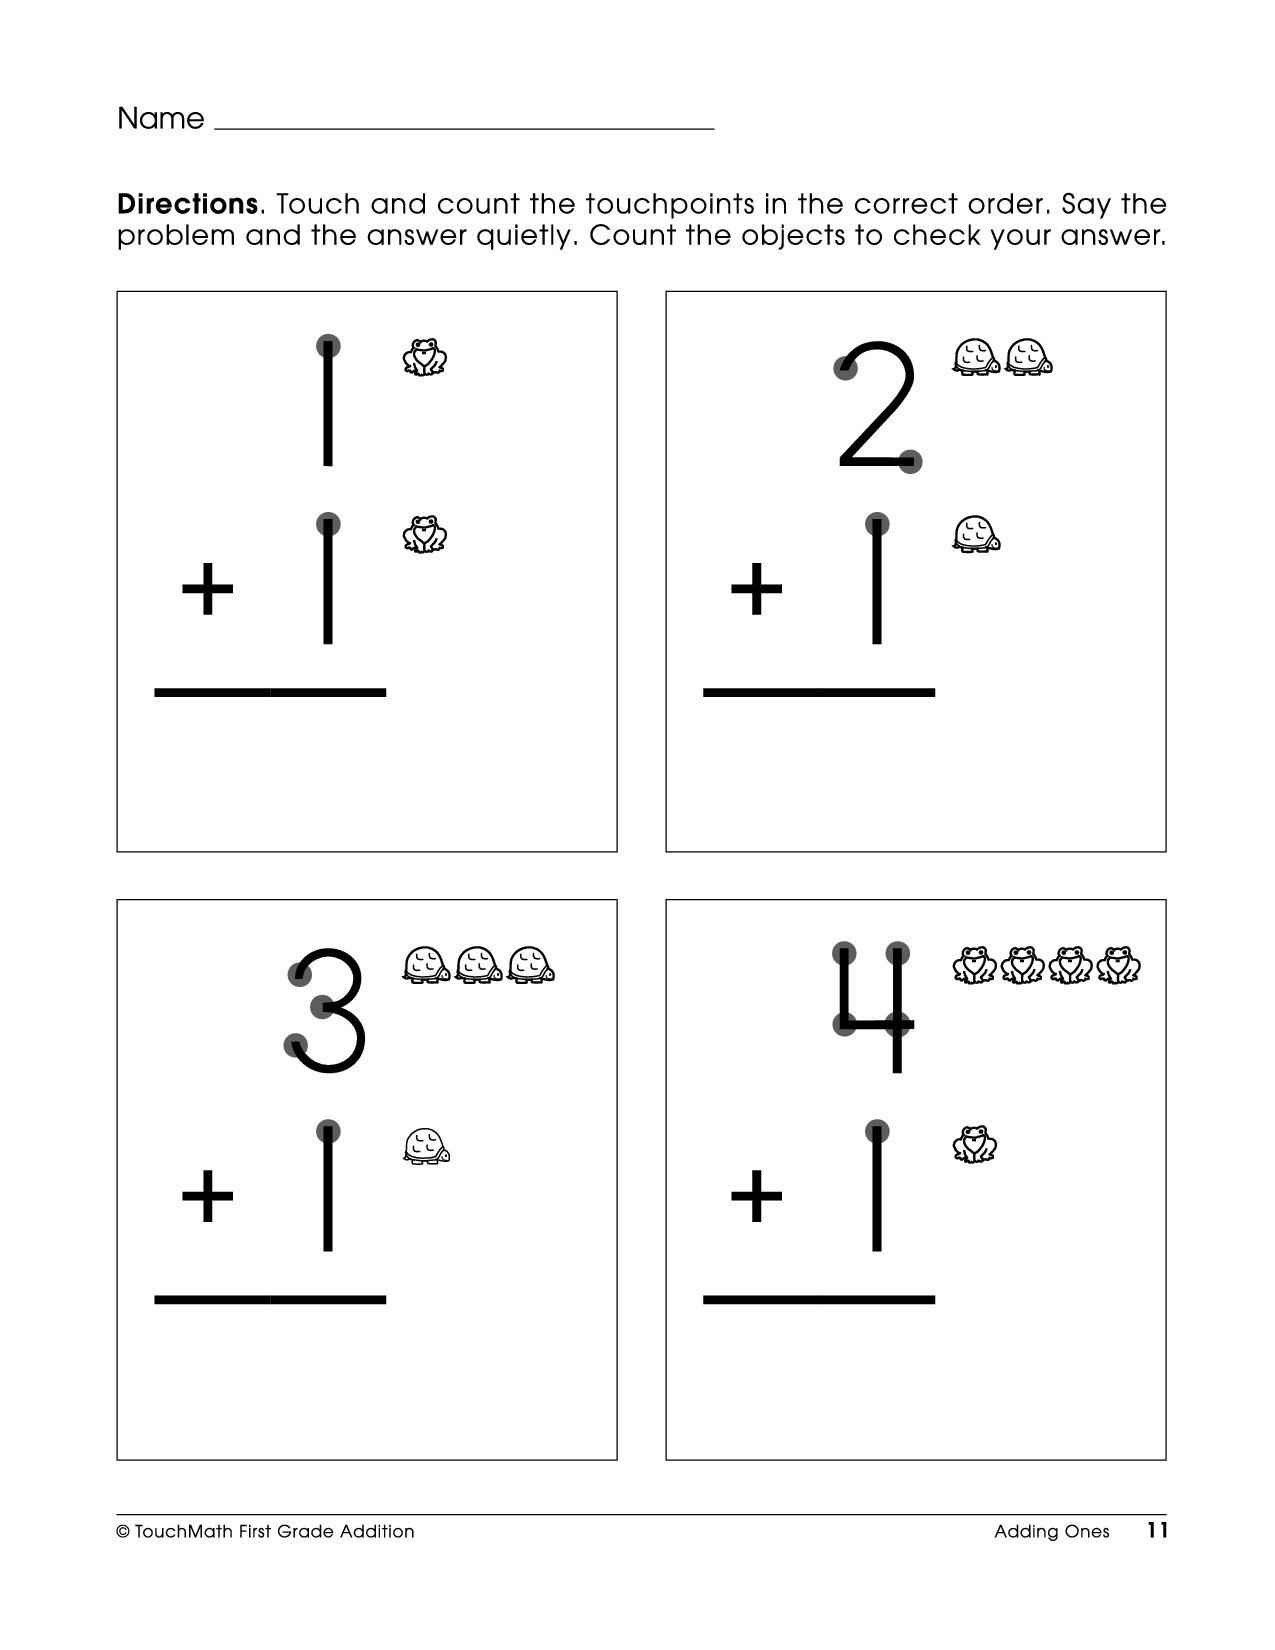 Touch Math Addition Worksheets Free Printable touchpoint Math Worksheets